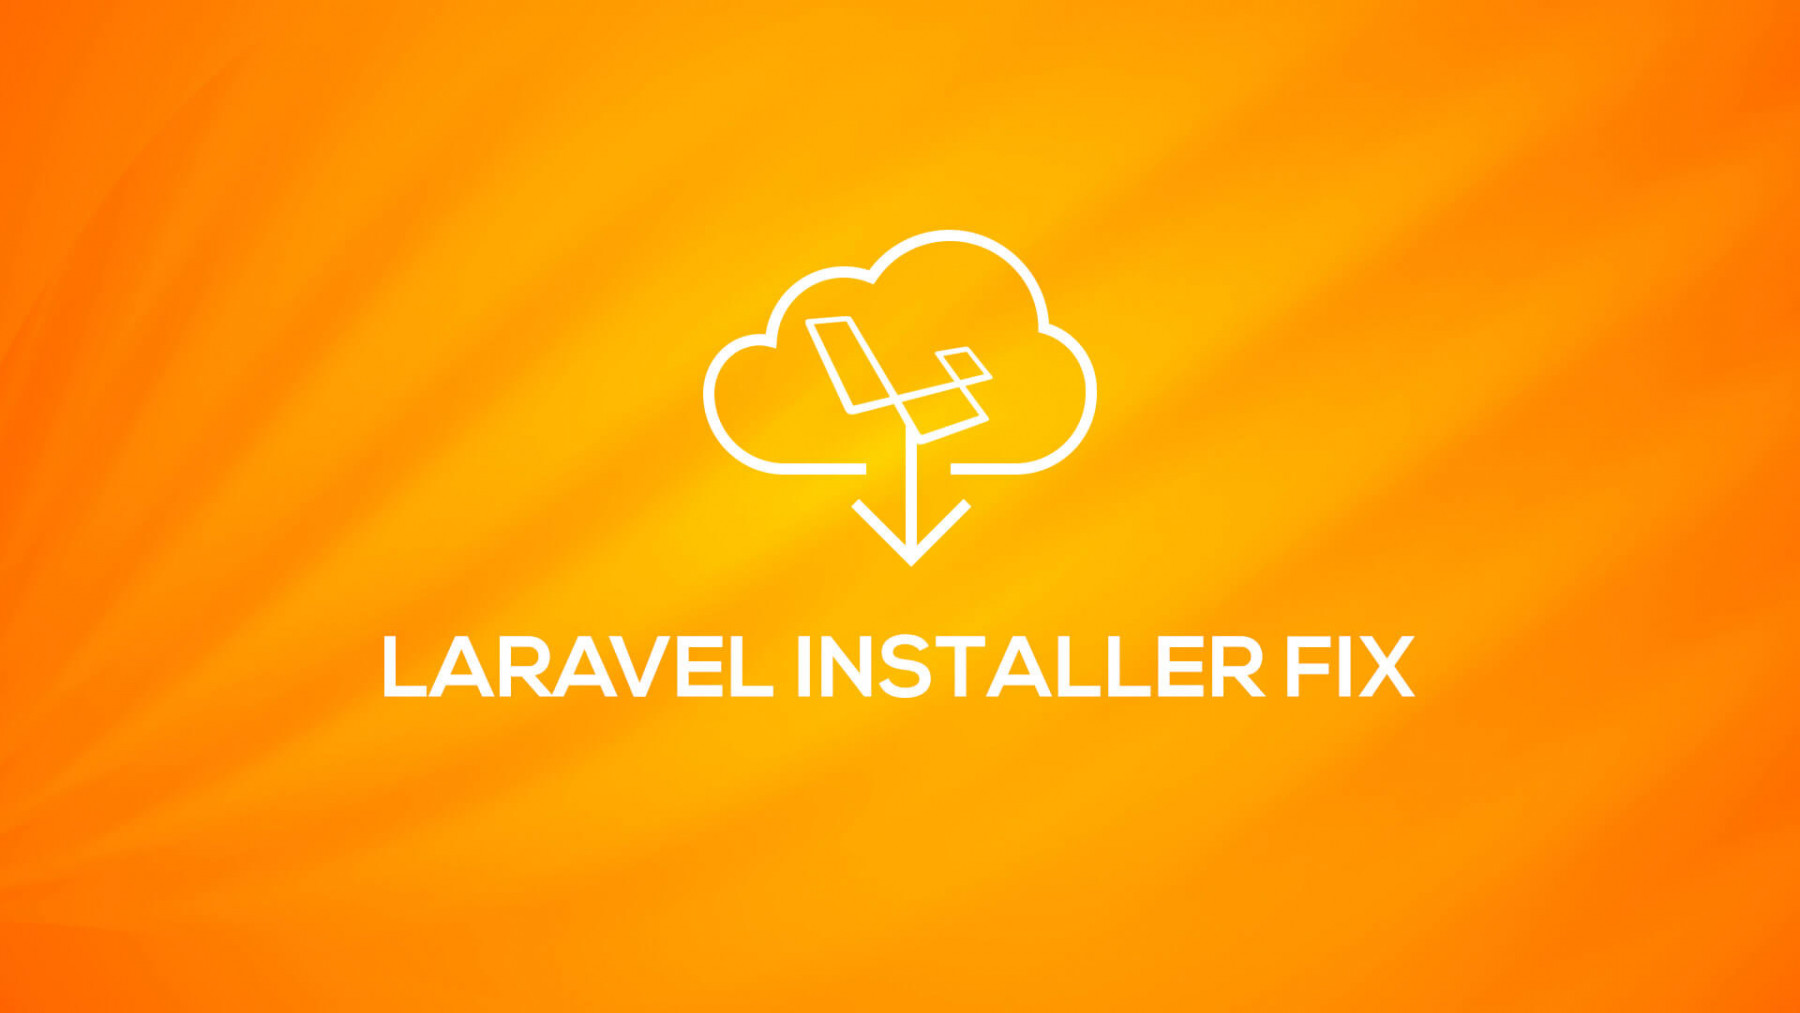 Laravel Installer Fix